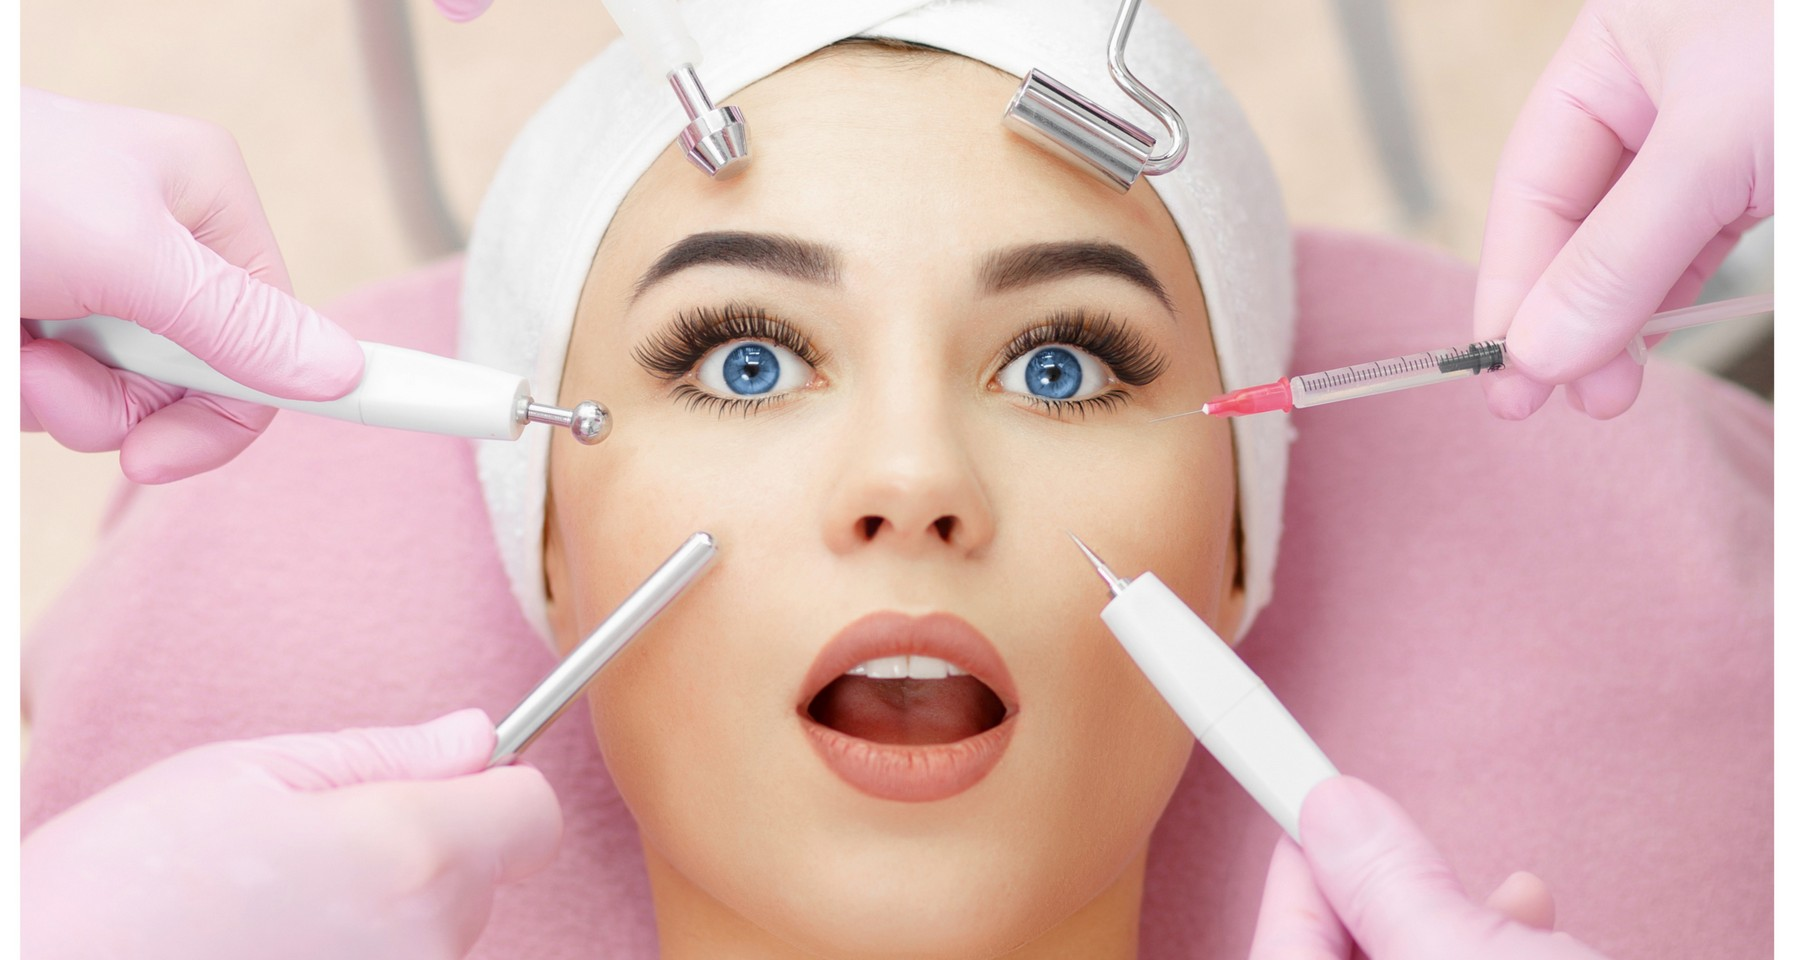 Beauty Trend Report: The Future of Anti-Aging